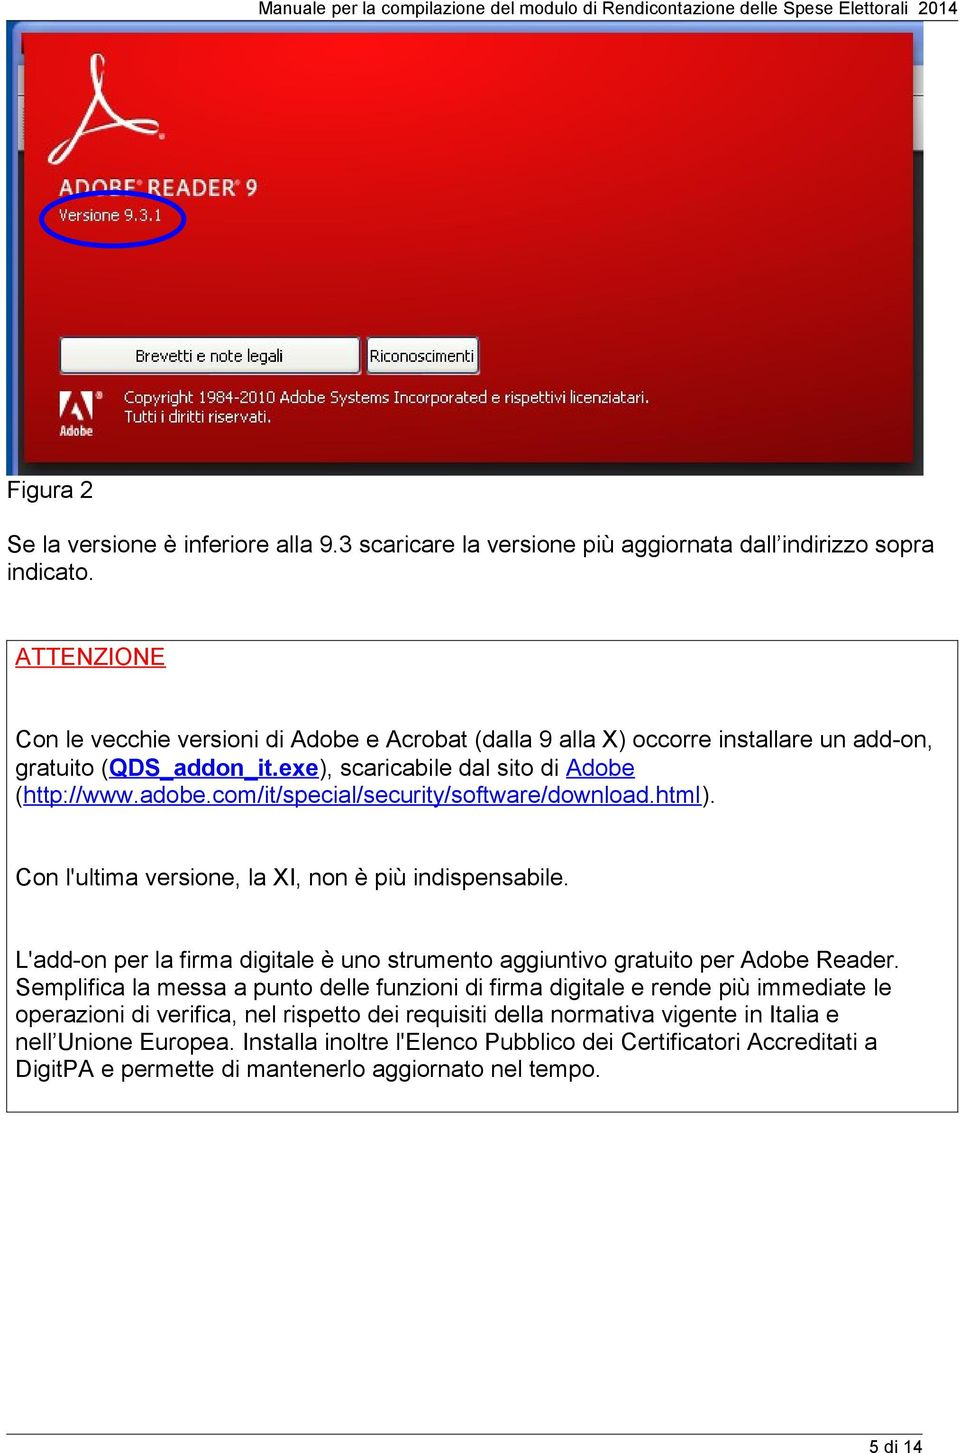 com/it/special/security/software/download.html). Con l'ultima versione, la XI, non è più indispensabile. L'add-on per la firma digitale è uno strumento aggiuntivo gratuito per Adobe Reader.